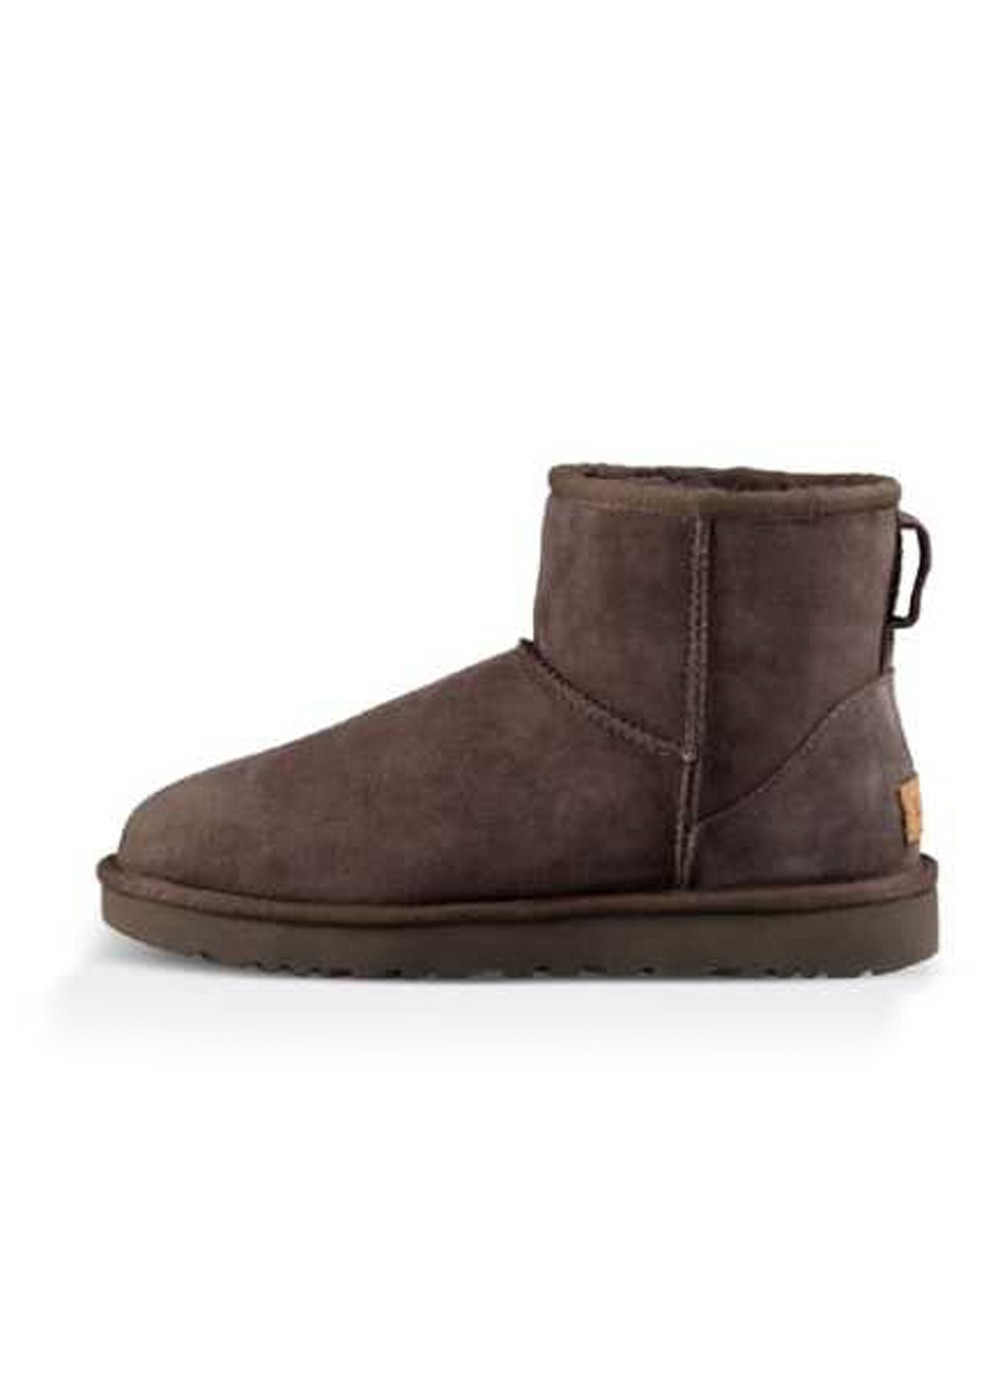 Classic Mini II|Chocolate|ブーツ|UGG (M&C)|最大35%OFF